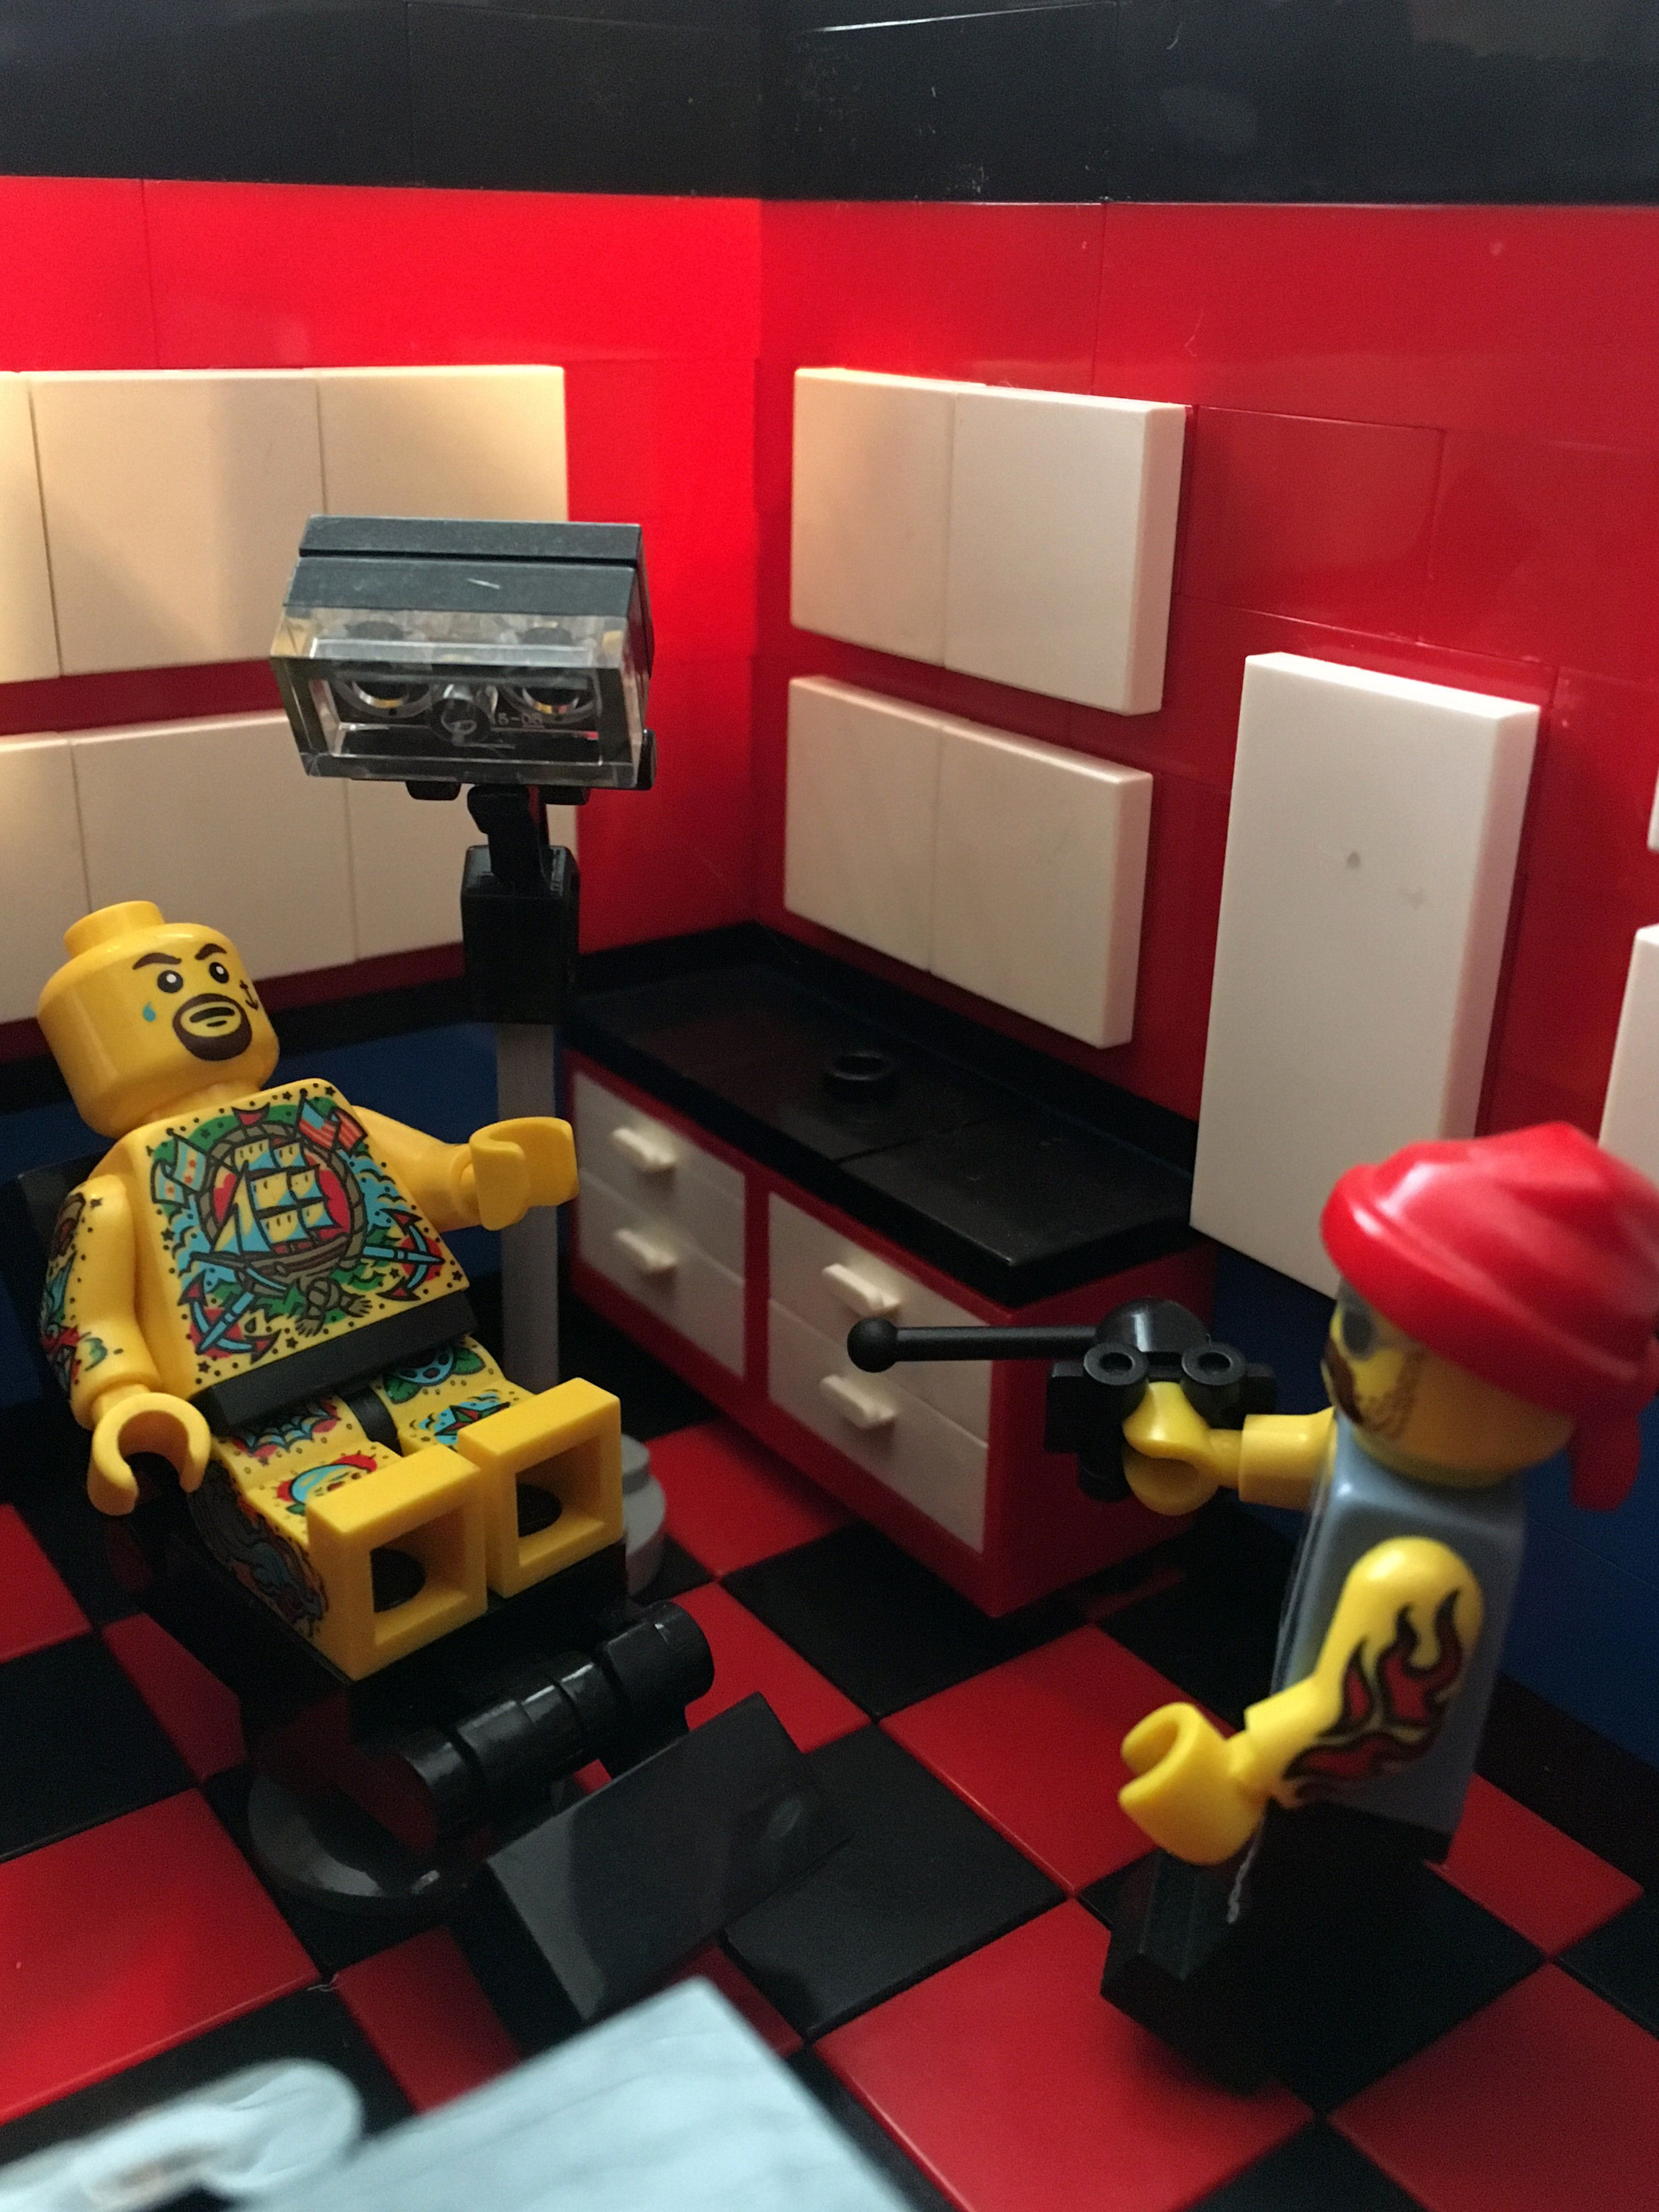 Img_8180 in 2020 tattoo shop gaming products lego